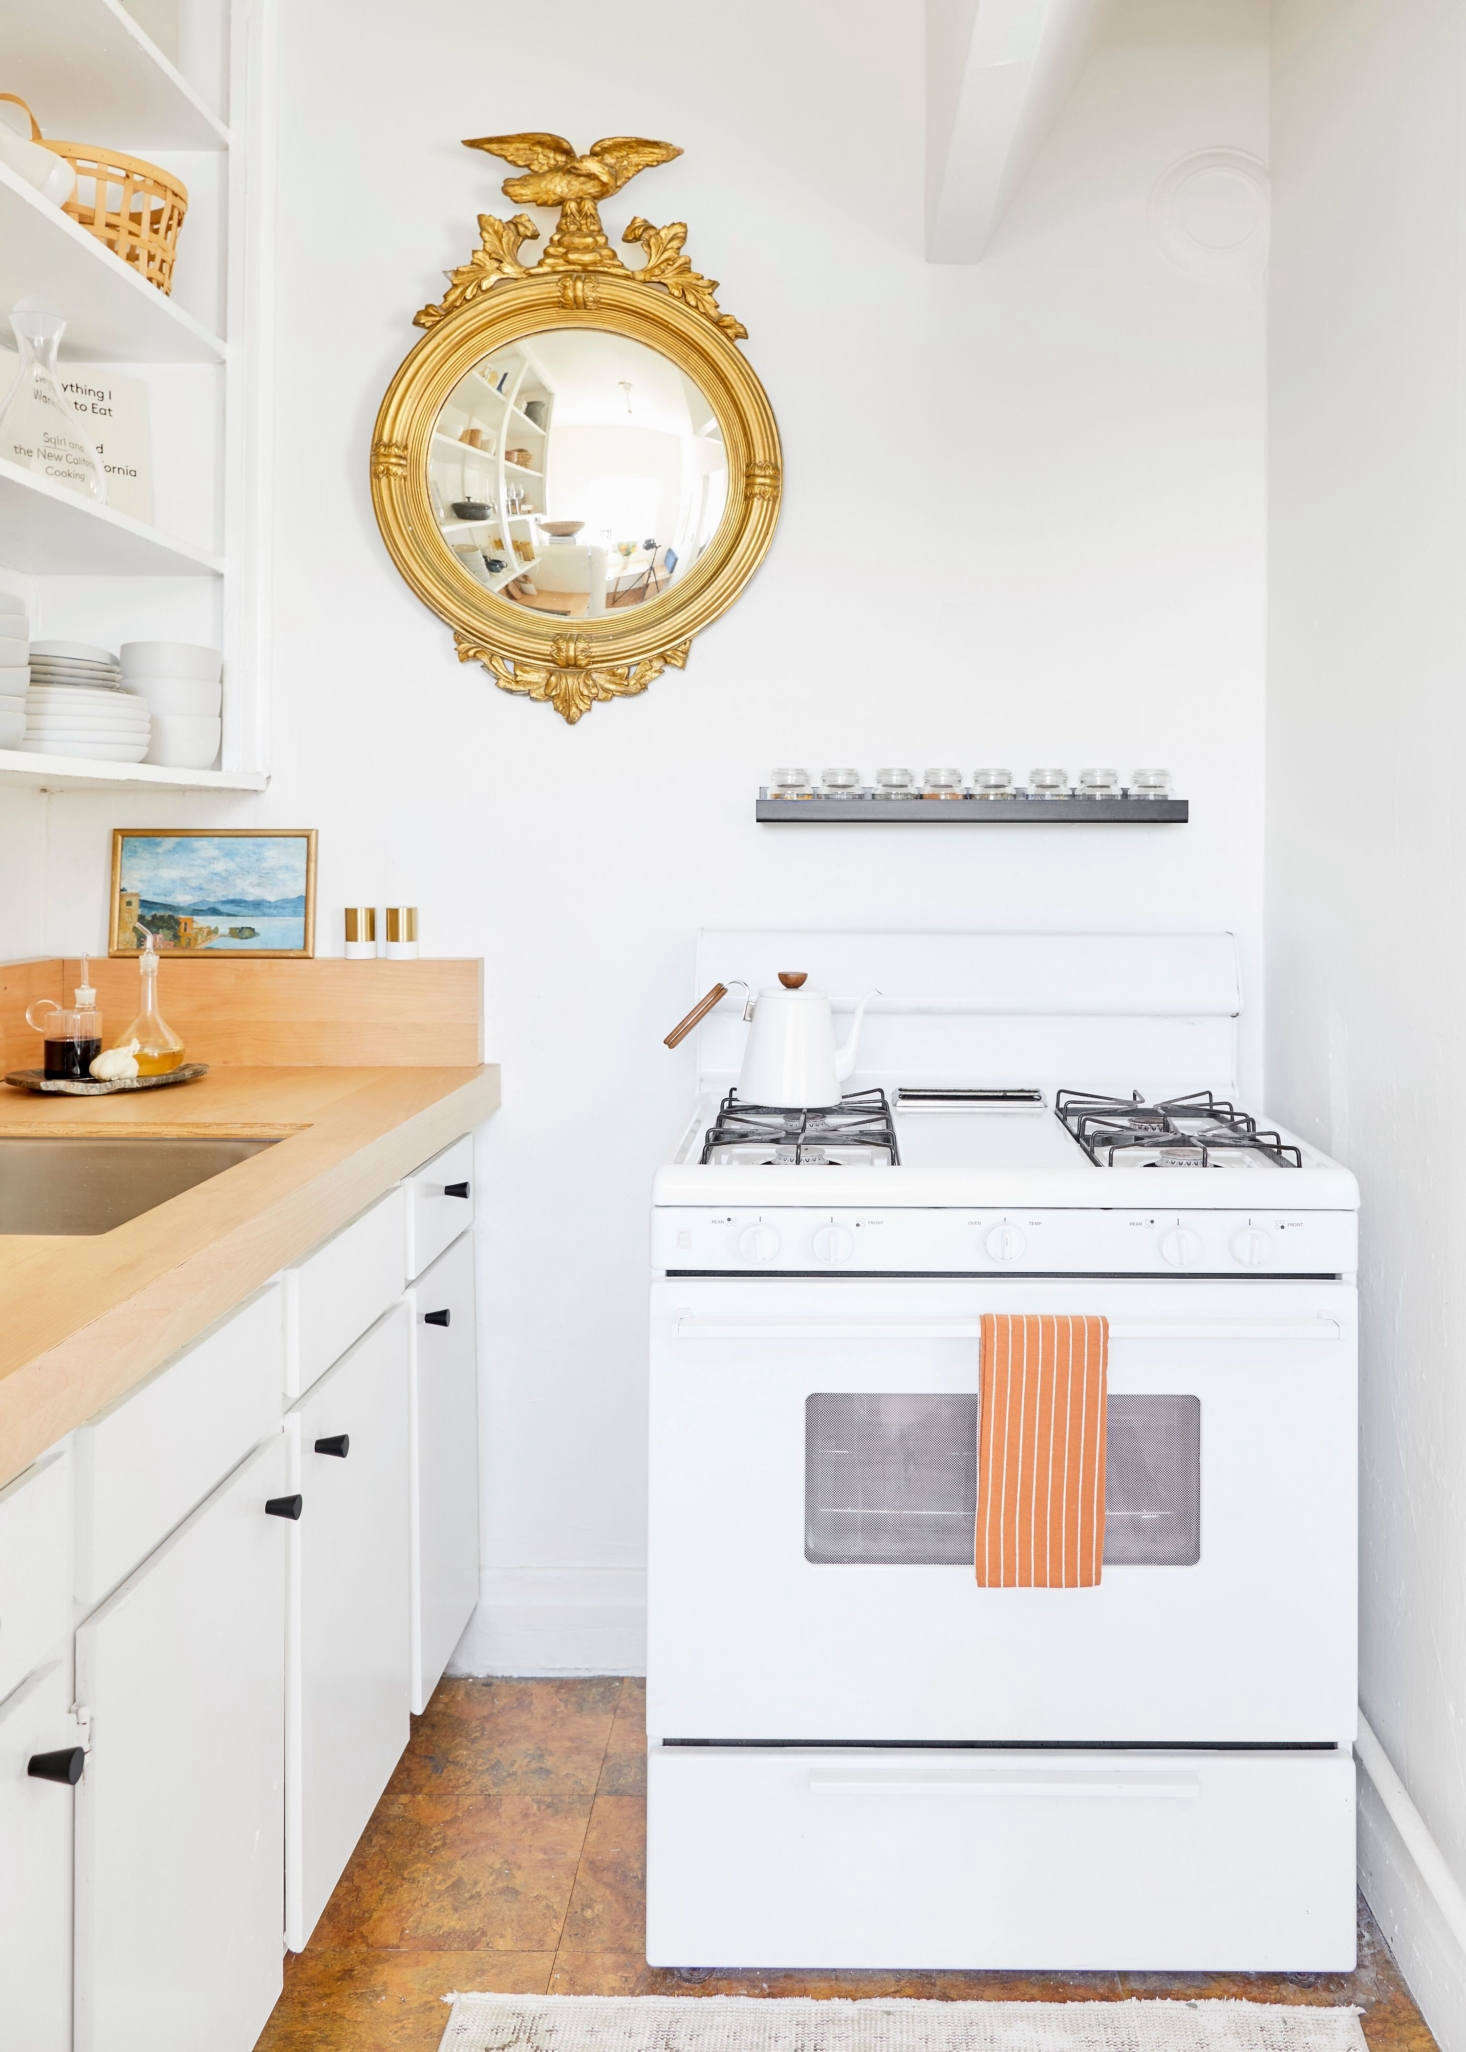 """Jessica chose Farrow & Ball's Pointing for the walls—""""the most perfect warm white."""" She's not sure what's on the cabinets, as they were painted before she moved in. Jessica considered making over the linoleum floor with sticker tiles, but its unevenness would have made that difficult. Instead, she made do by covering much of the floor with a vintage Turkish rug. The mirror has been in her family for four generations. The landscape was a $20 flea market score. (SeeThe New Art Gallery: 12 Favorite Kitchens with Paintings on Display.)"""